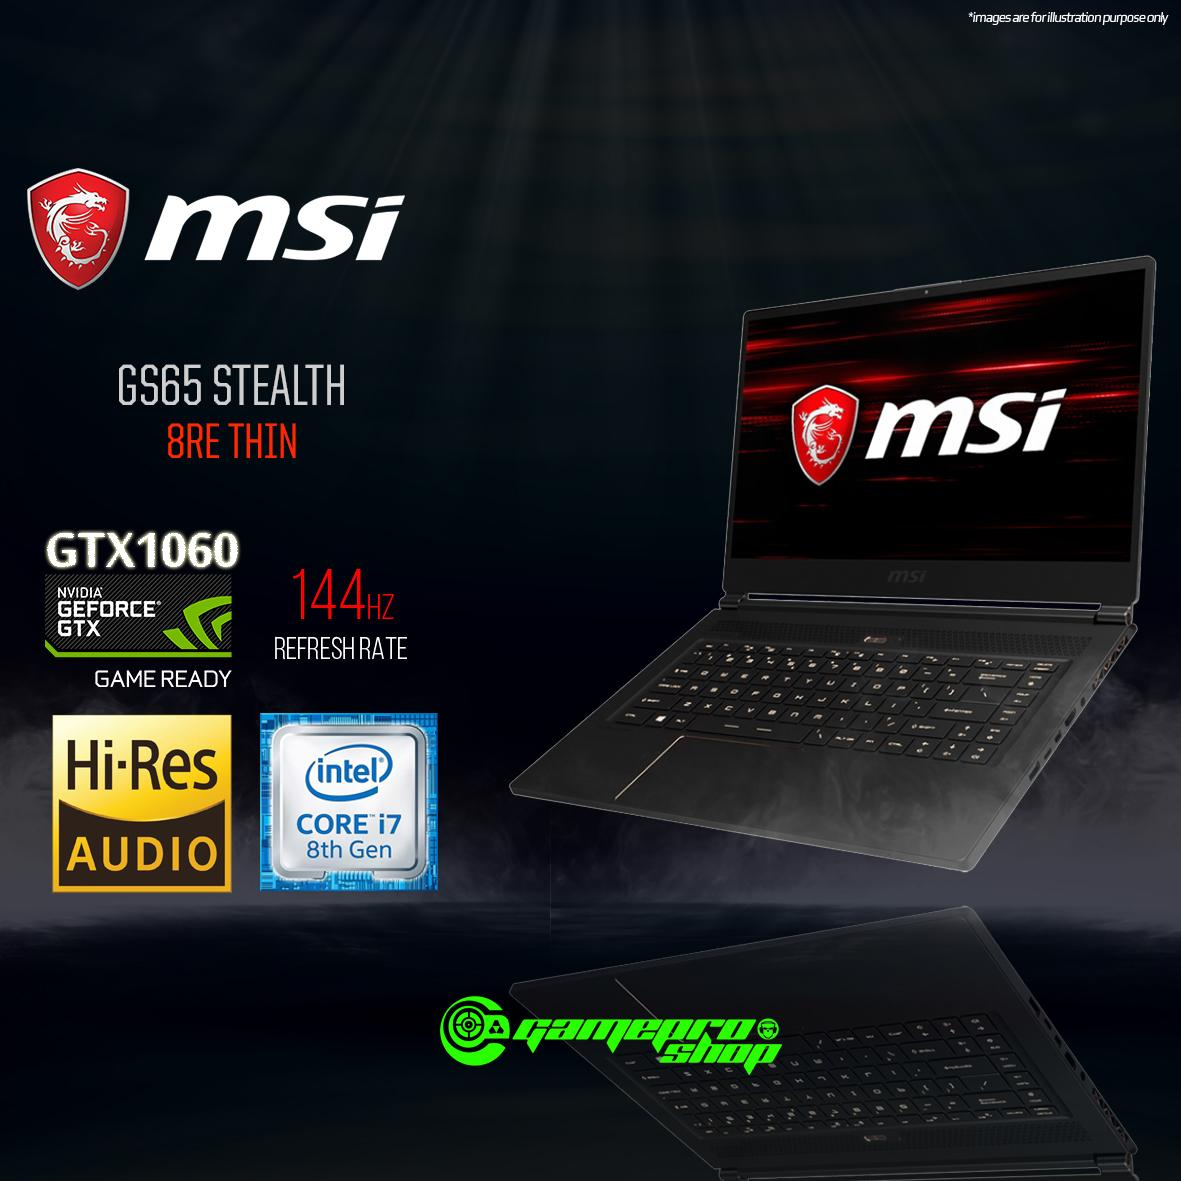 "MSI GS65 8RE GTX1060 Stealth - Thin (i7-8750H / 8GB / 256GB SSD) 15.6"" with 144Hz Gaming Laptop *IT SHOW PROMO*"